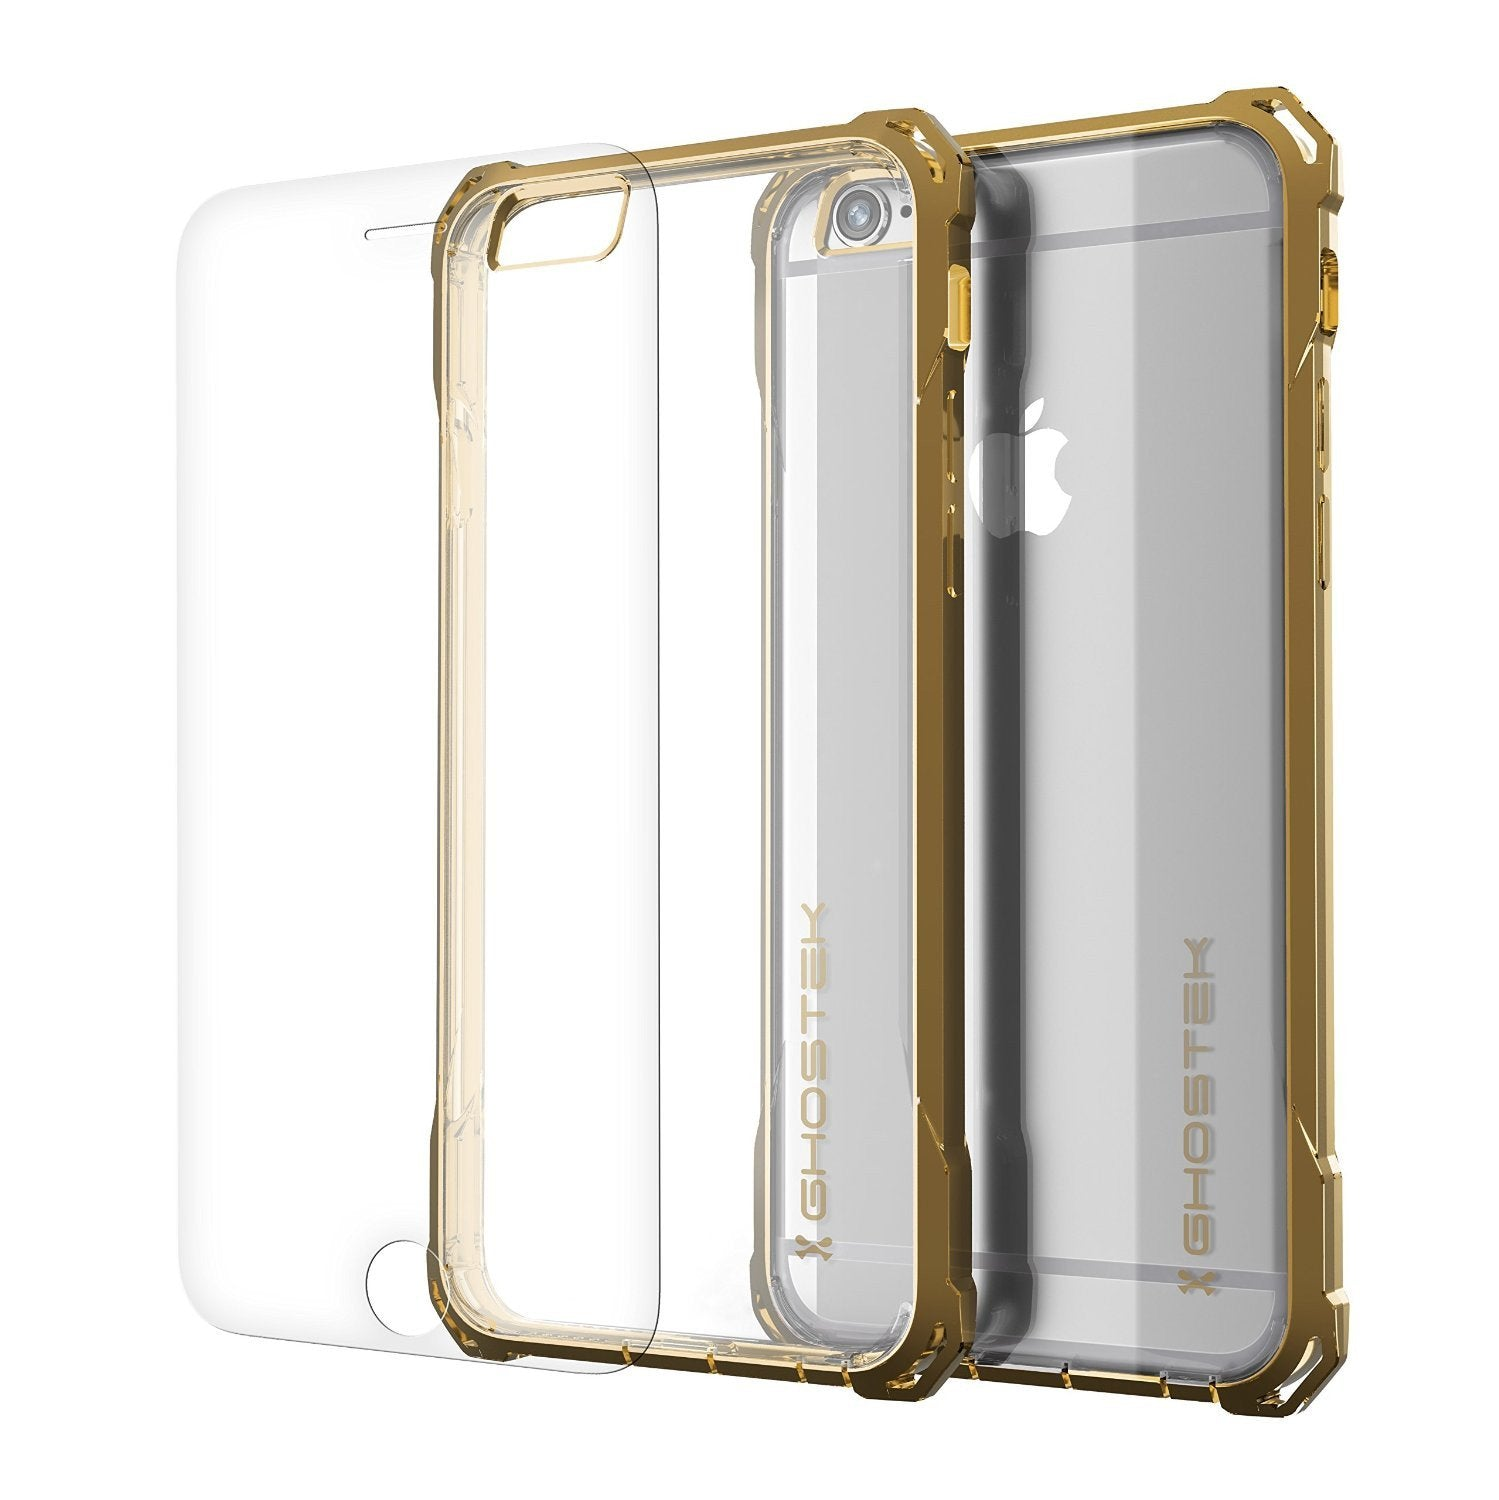 iPhone 6S Case, Ghostek® Covert Gold, Premium Impact Protective Armor | Lifetime Warranty Exchange